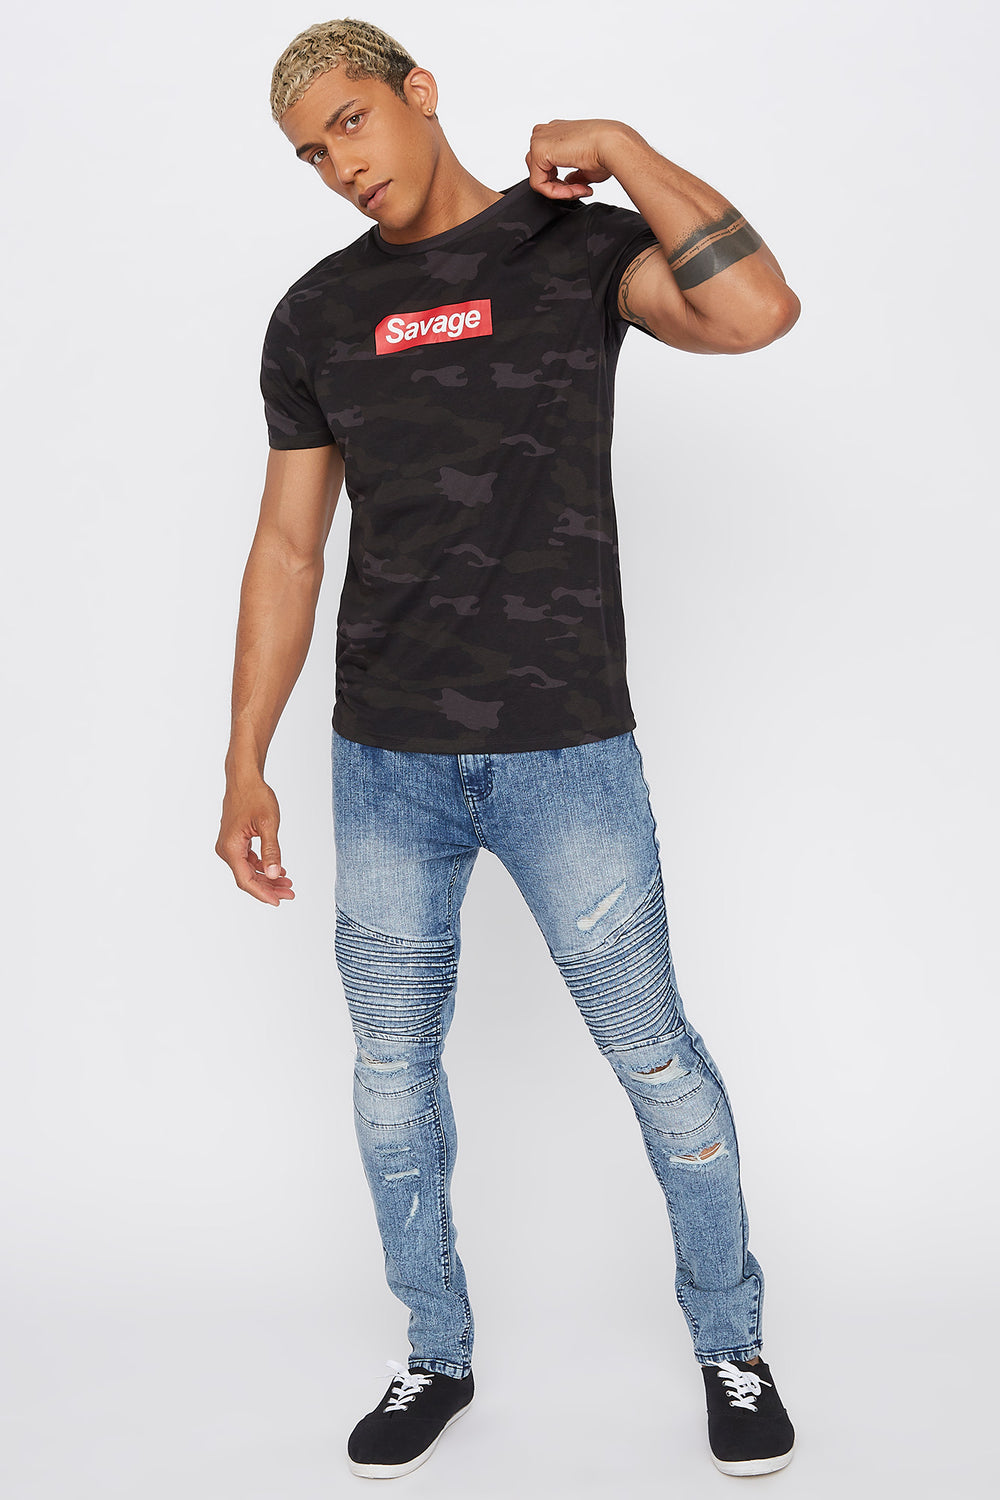 Camo Savage T-Shirt Black with White